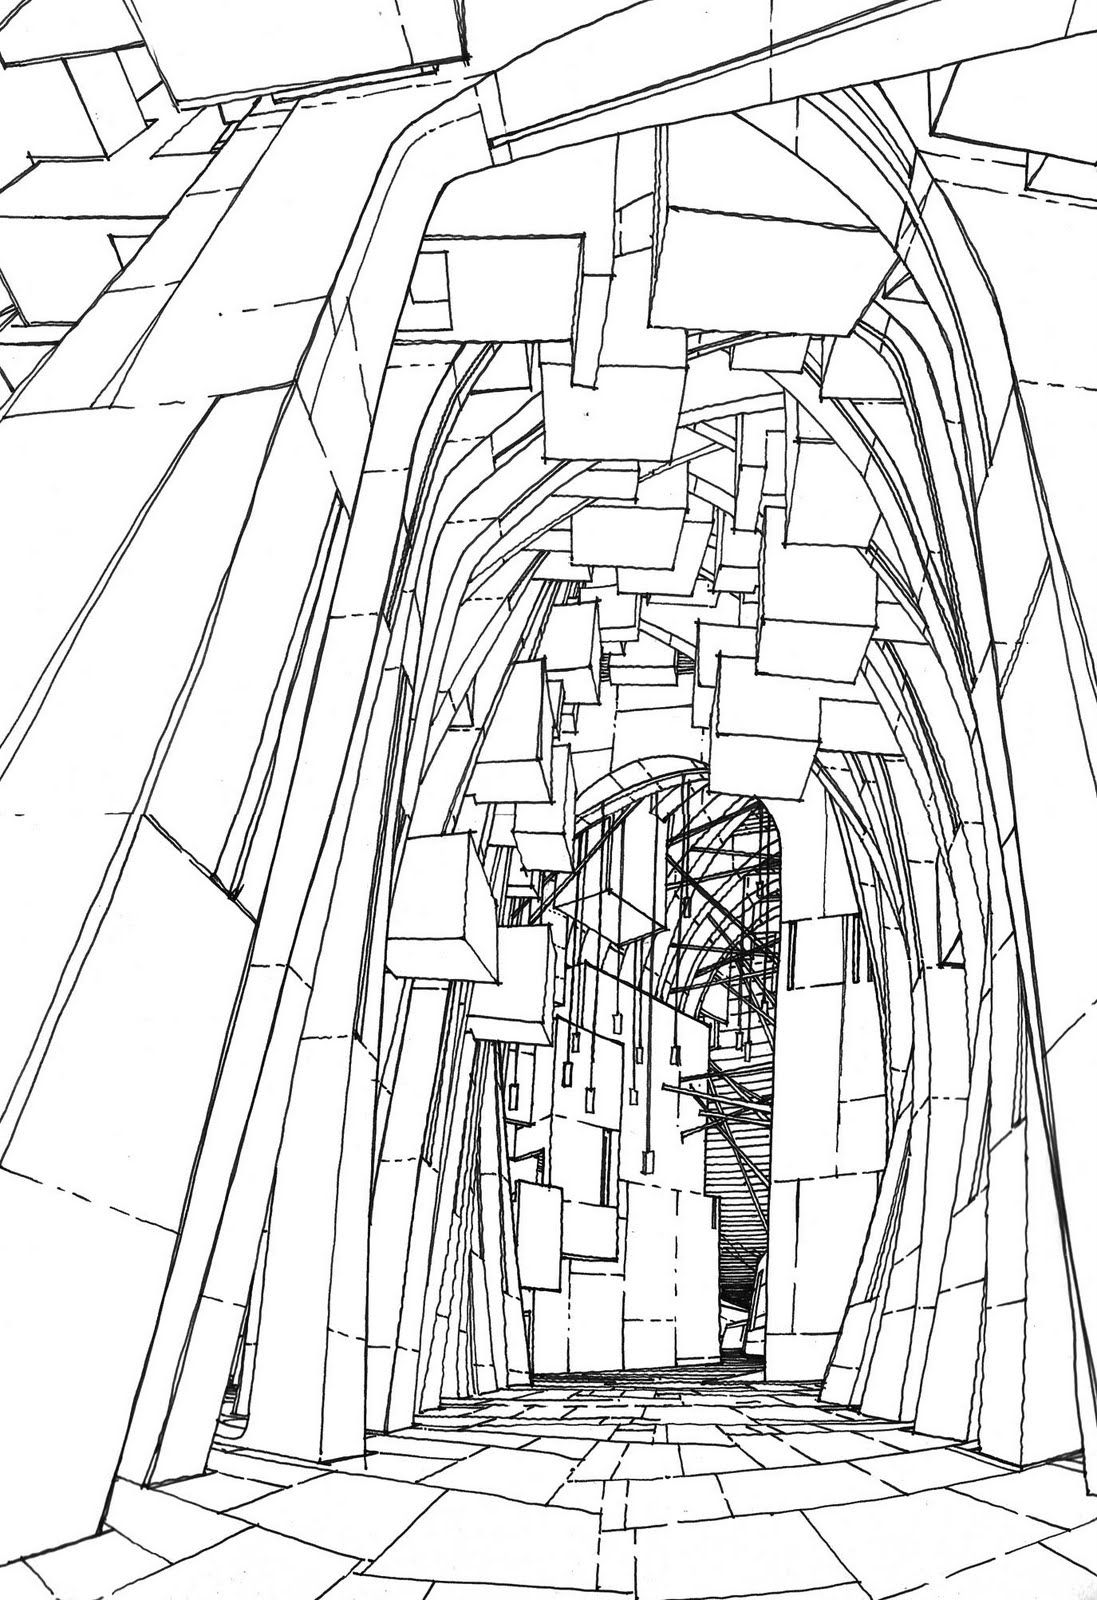 The Architecture Draftsman Architecture Drawing Architecture Sketchbook Architecture Sketch